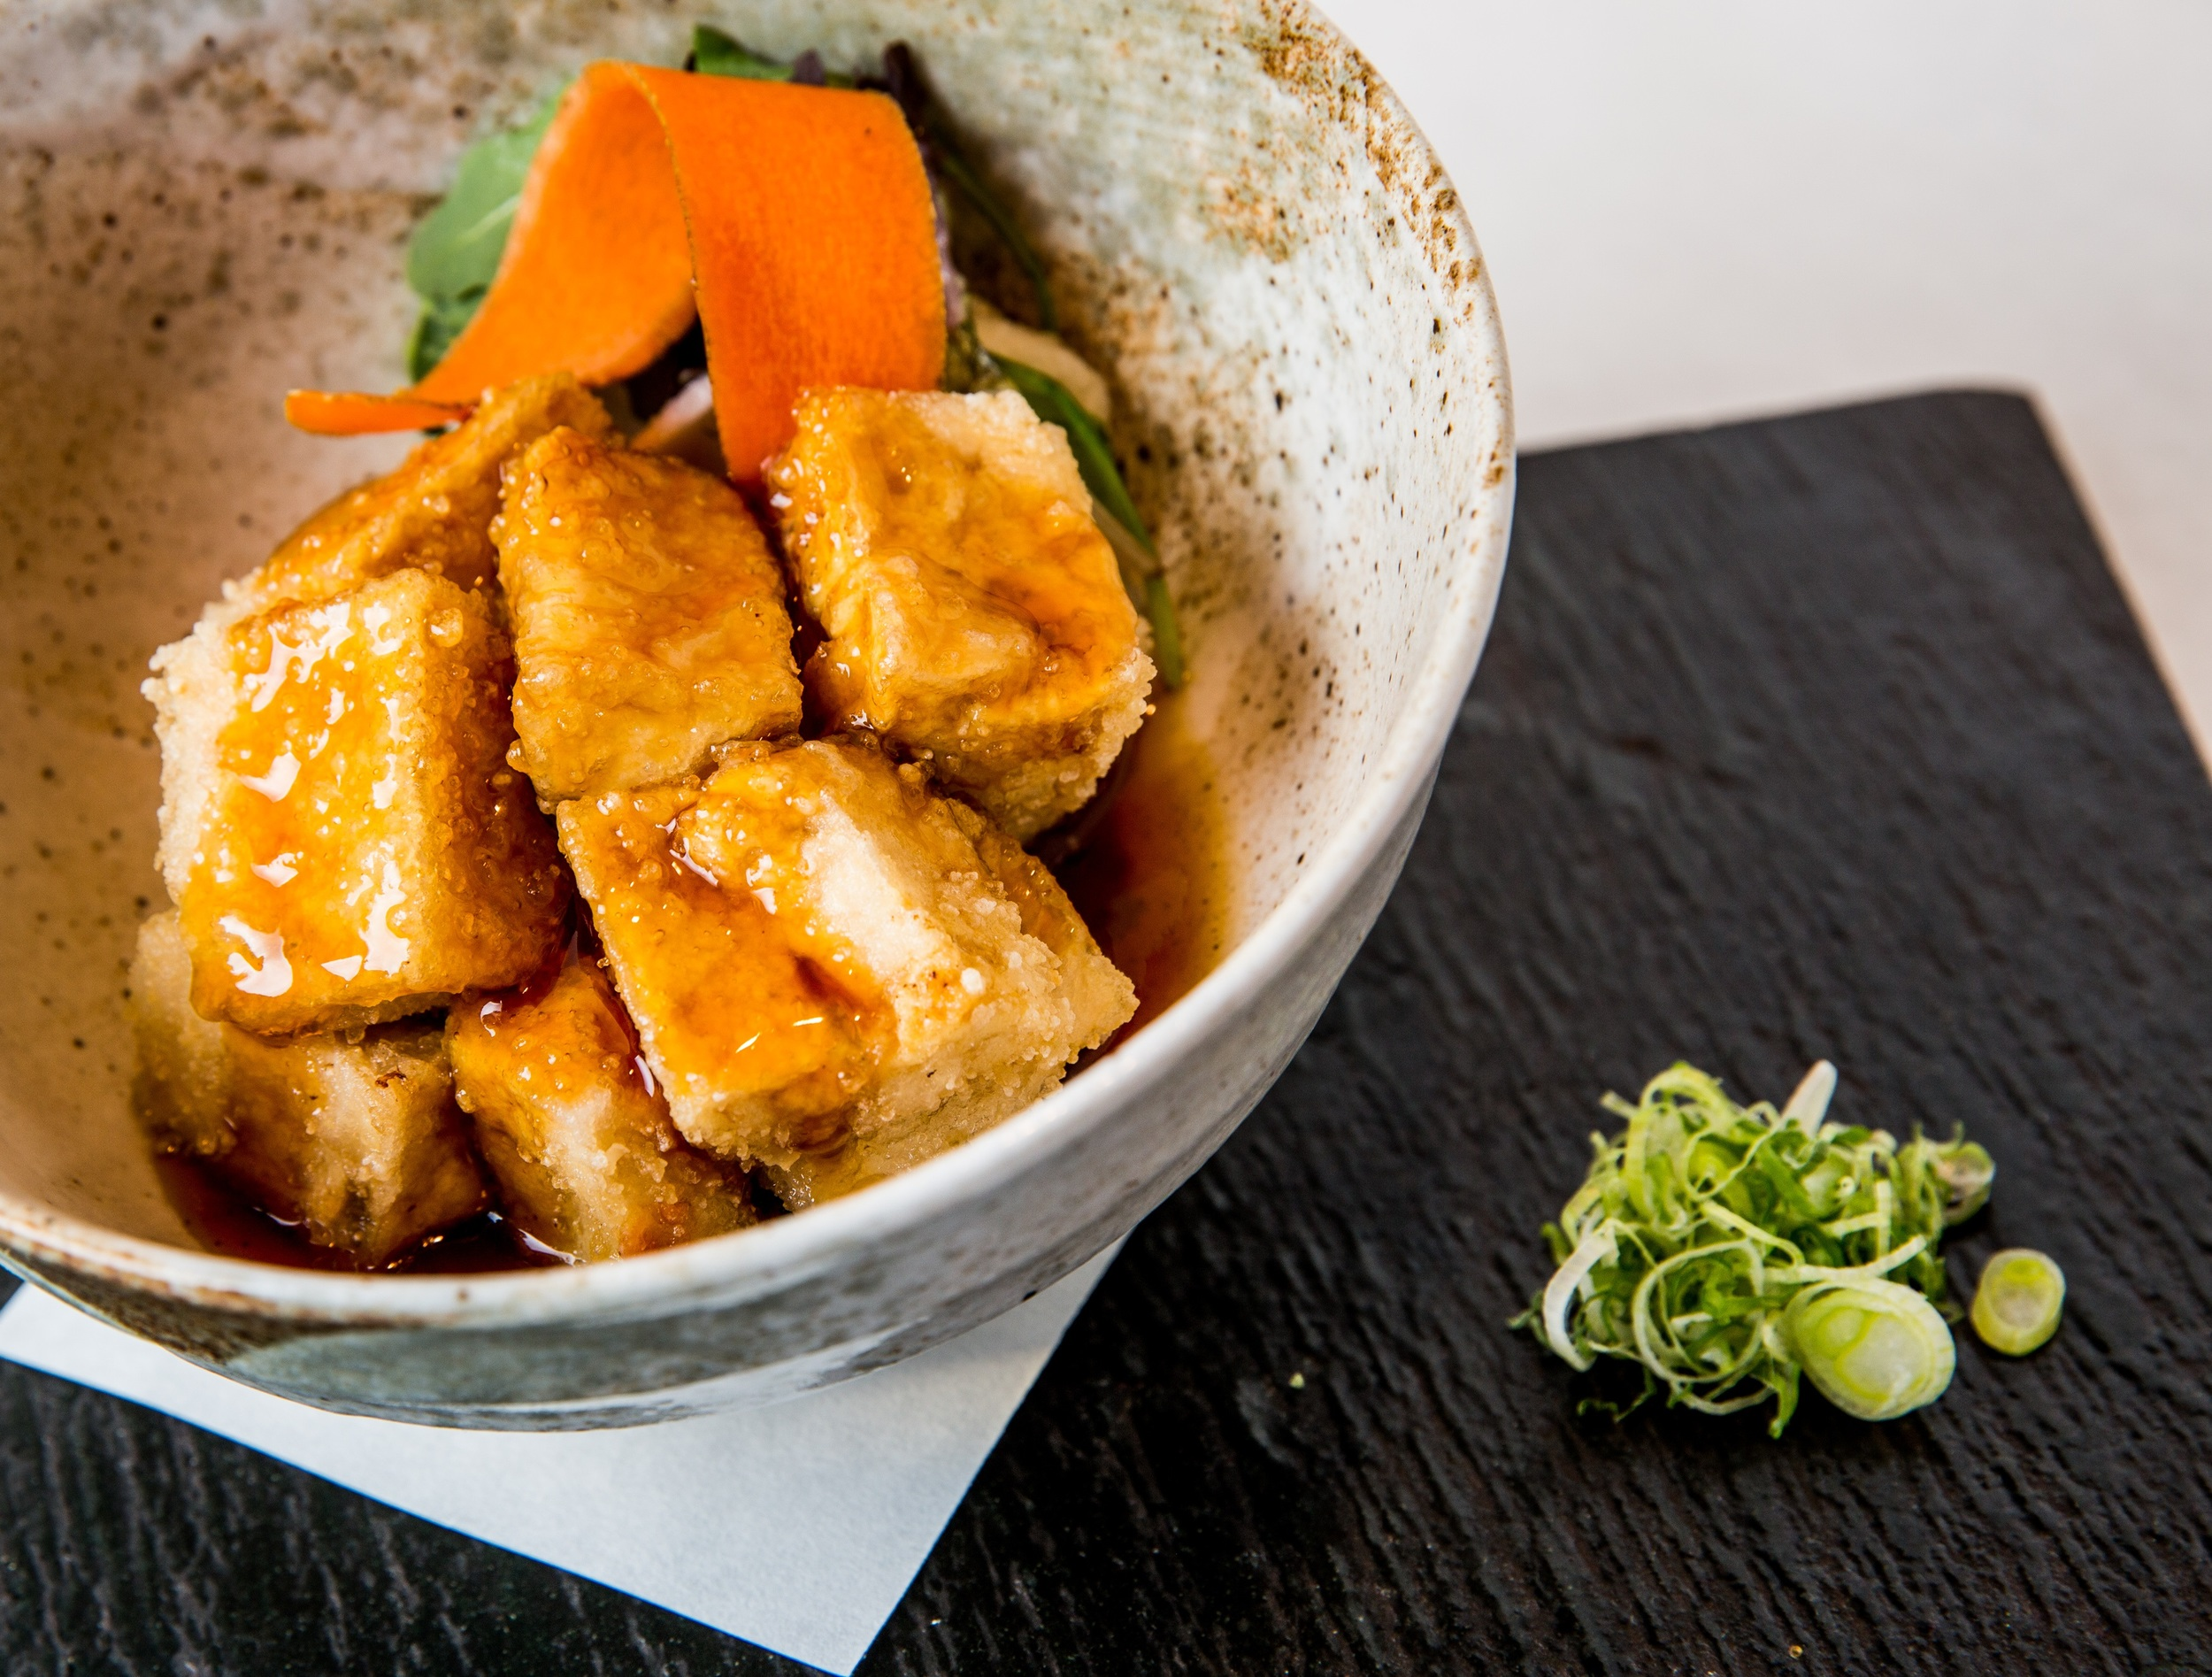 Fried tofu appetizer.jpg